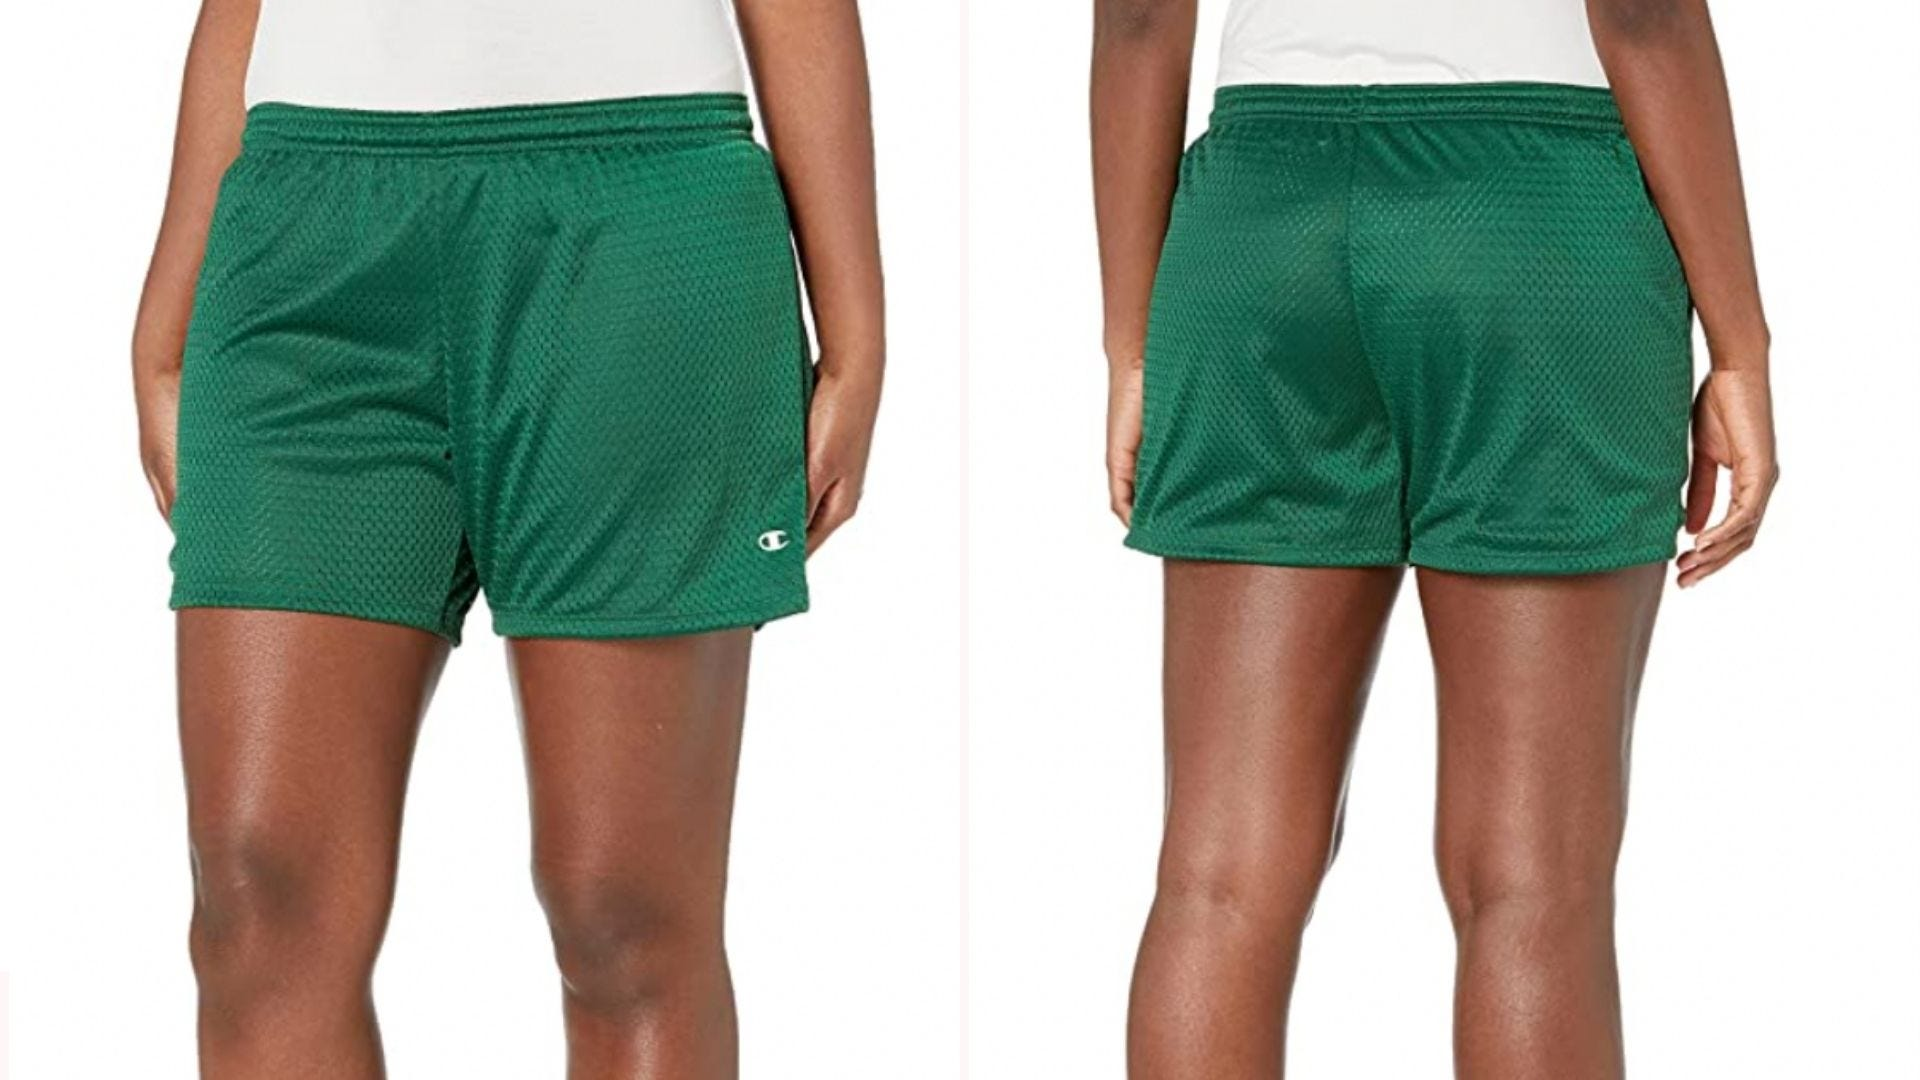 woman wearing green athletic shorts with elastic waistband